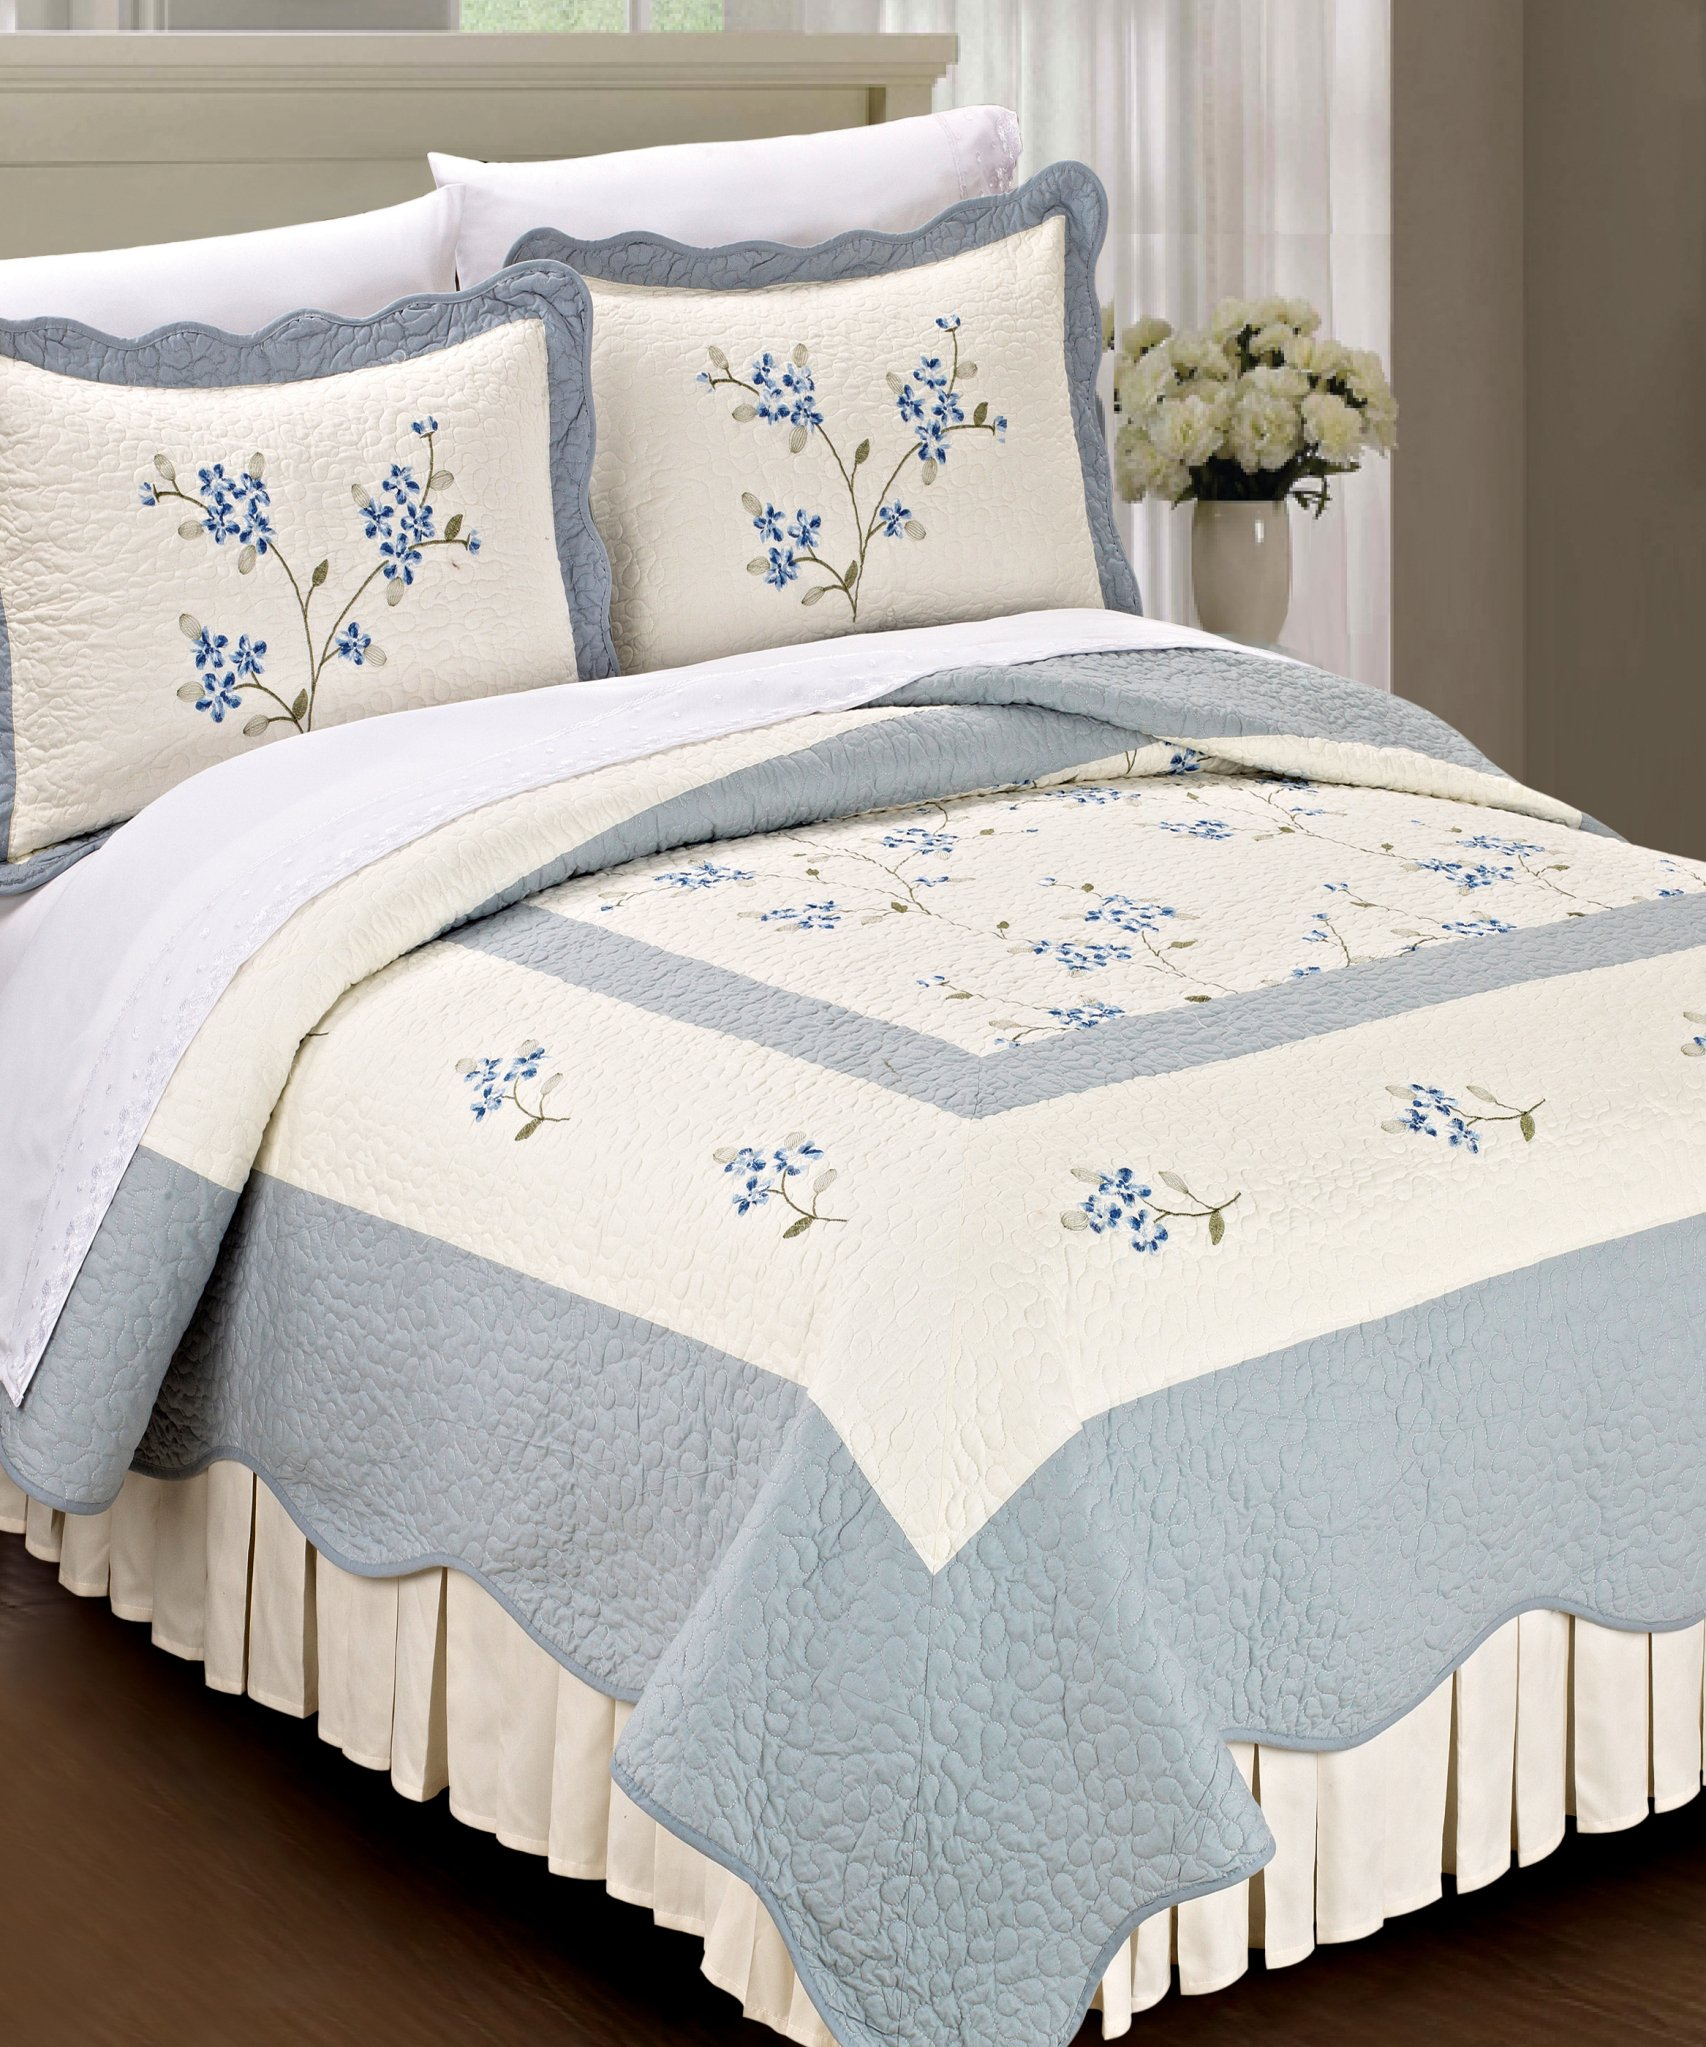 Serenta Classic Blue Hawaiian Flowers 100% Cotton Bedspread Quilt Blanket 3 Pieces Bed Set, King - Please Check Dimensions Carefully (1) King Bedspread: 102 x 94 Inches (2) King Shams: 20 x 30 + 2 Inches - sheet-sets, bedroom-sheets-comforters, bedroom - 919ECDfztsL -